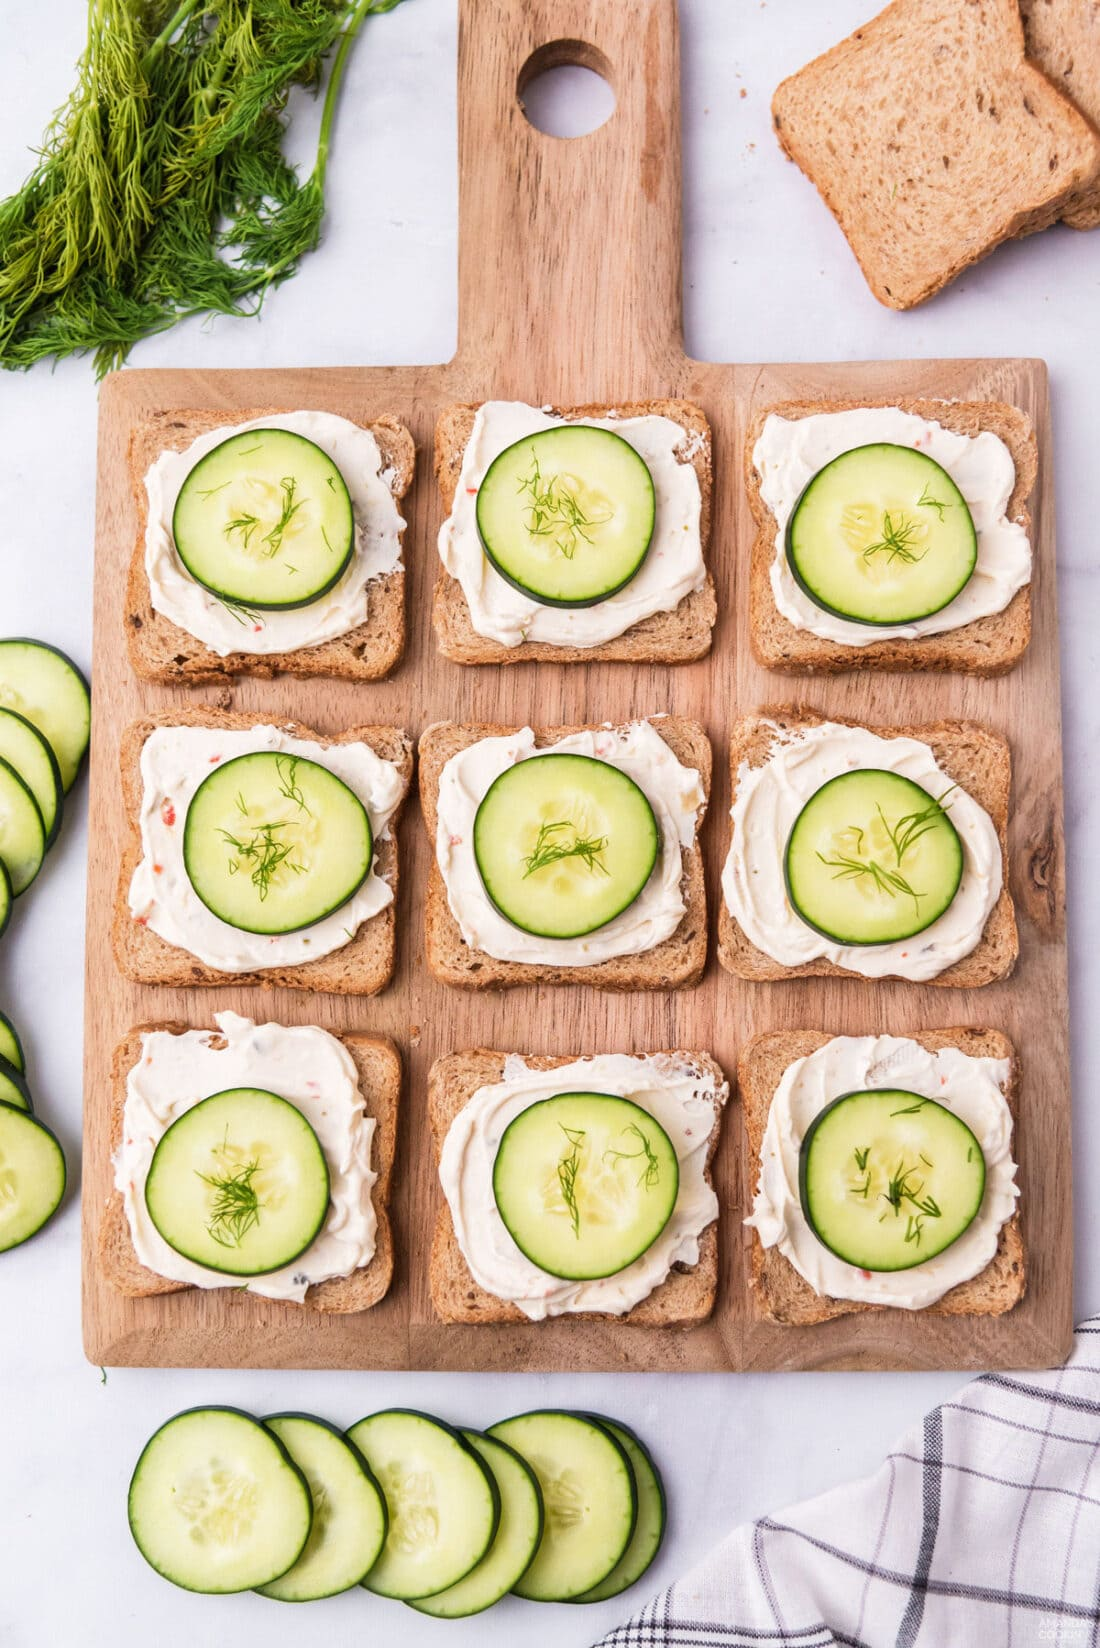 wood board with open faced cucumber sandwiches